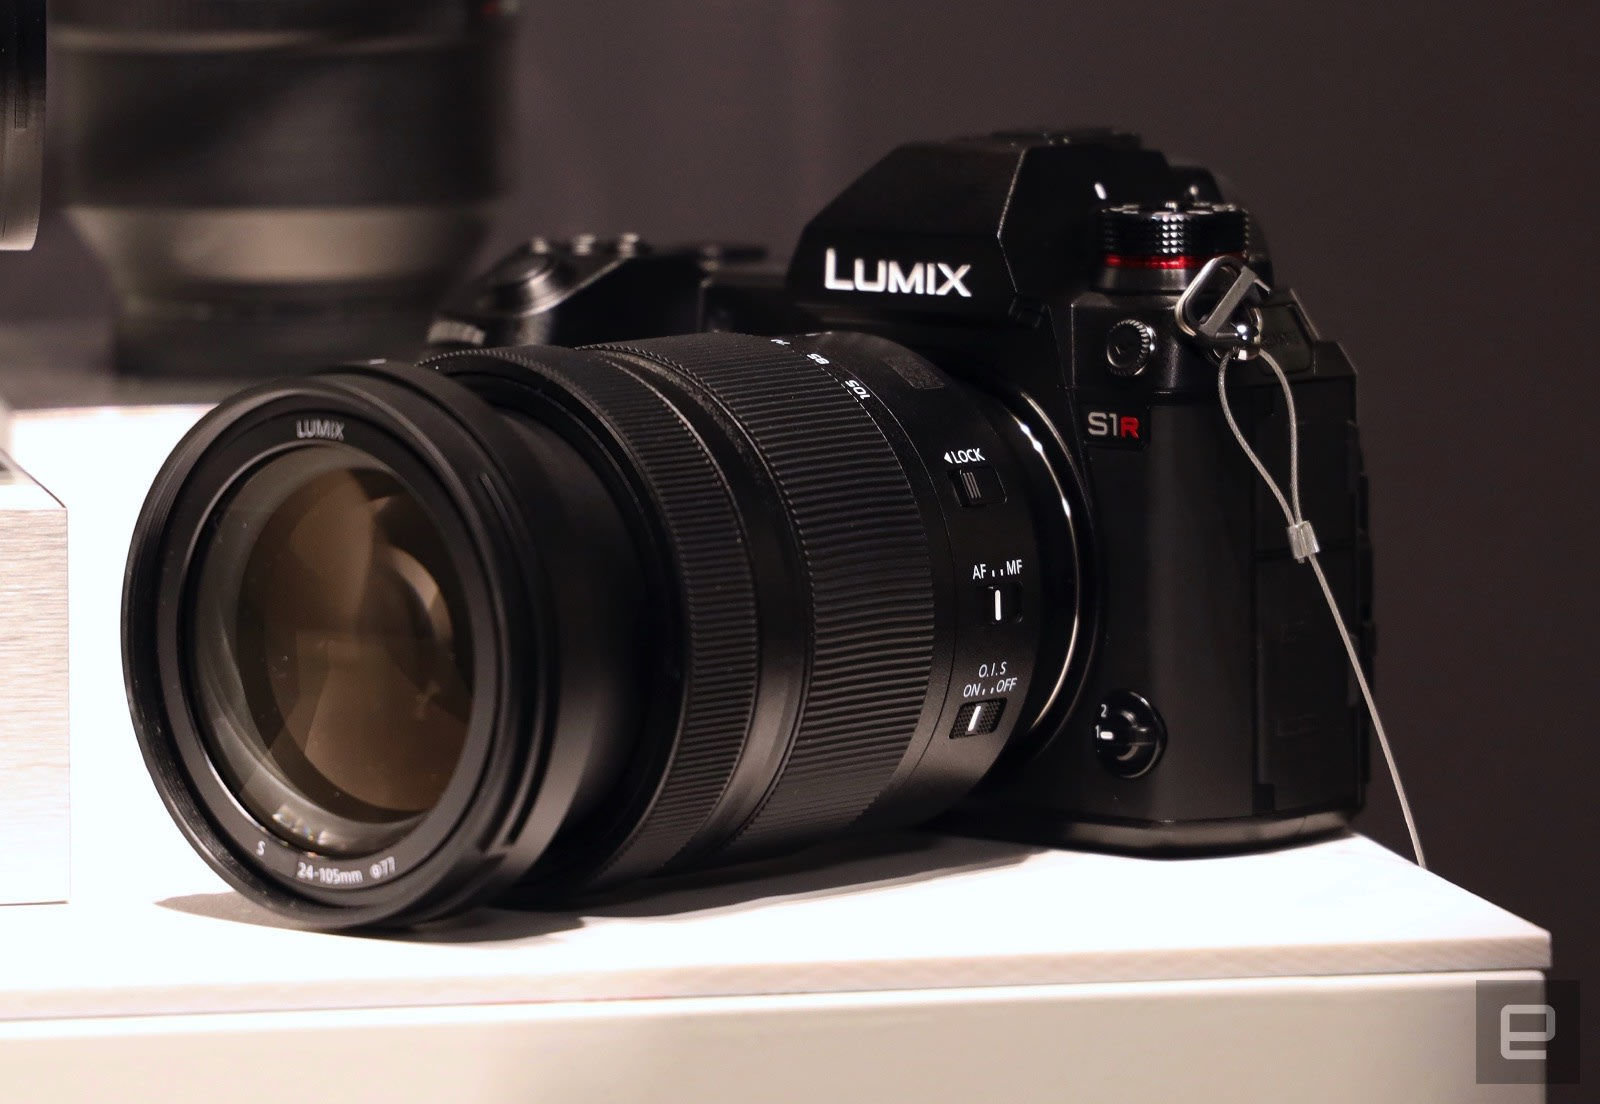 Panasonic announces two full-frame L-Mount mirrorless cameras